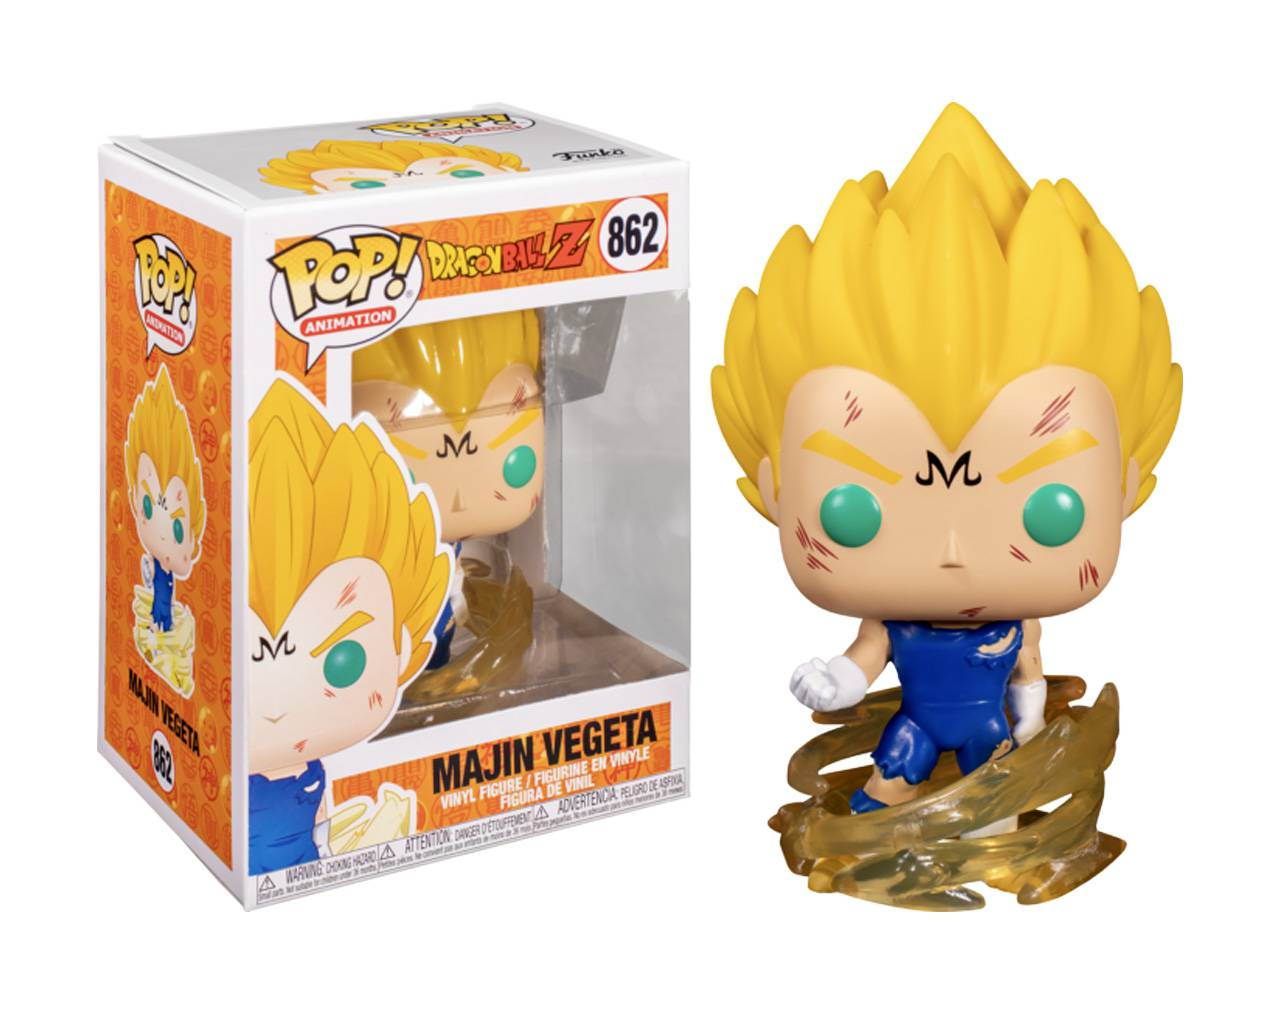 Majin Vegeta (Powering Up) Pop! Vinyl